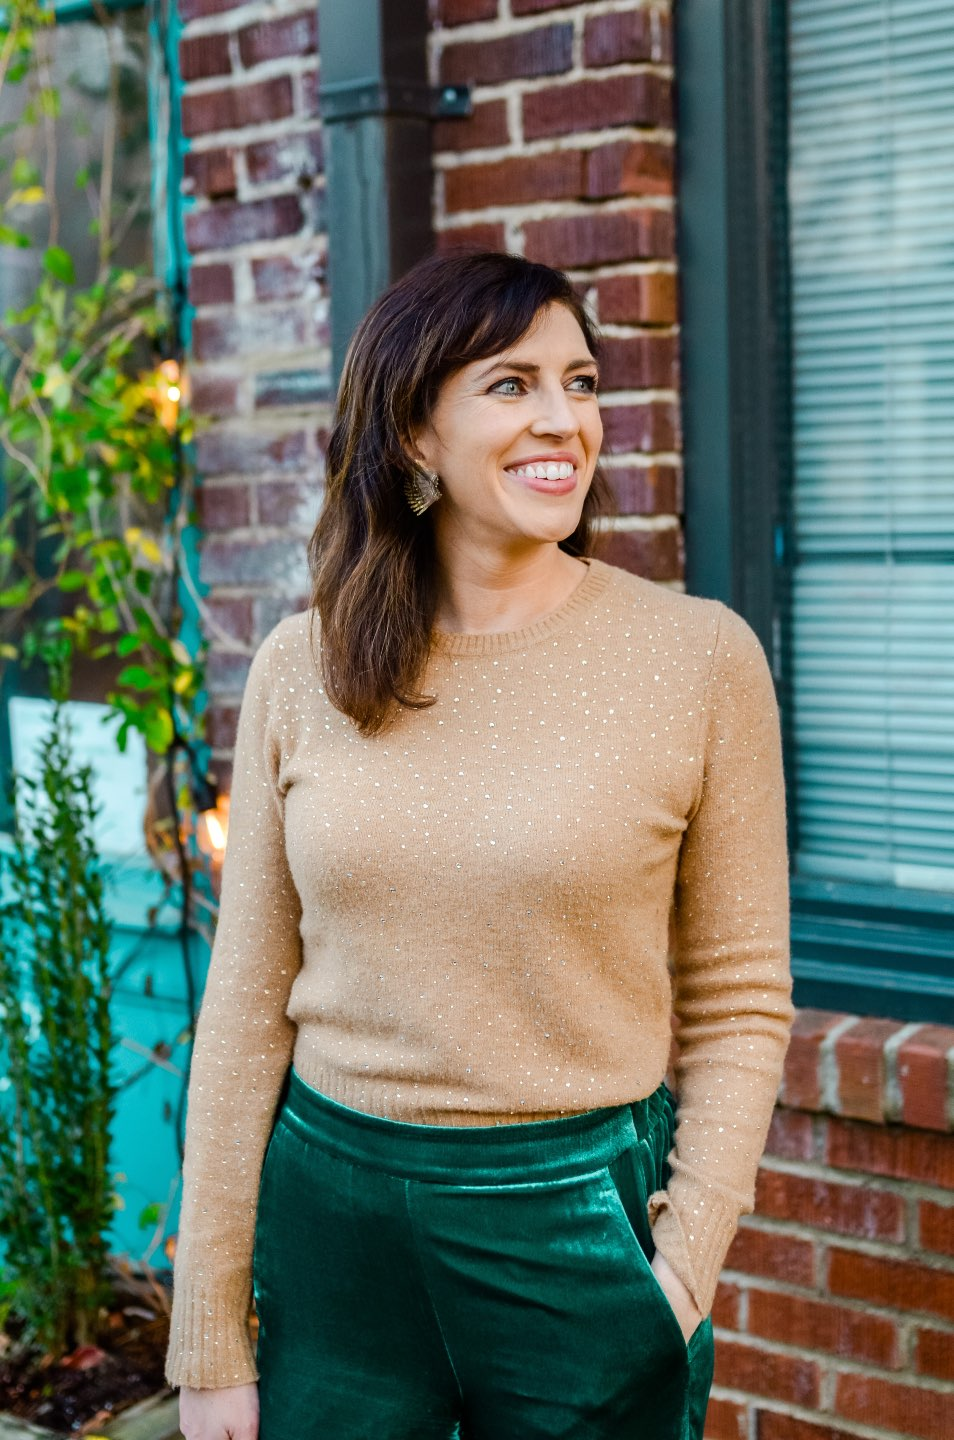 Holiday Style and Outfit Inspiration - I'm Fixin' To - @mbg0112 | Holiday Style and Outfit Inspiration by popular North Carolina fashion blog, I'm Fixin' To: image of a woman outside wearing a J. Crew Gemstone sweater in supersoft yarn, J. Crew Pull-on Peyton pant in velvet, metallic mules, Cuyana Small Structured Leather Tote, Nordstrom David Yurman Cable Classic Buckle Bracelet with 18K Gold, Nordstrom David Yurman Cable Classics Bracelet with 14K Gold, Nordstrom Mignonne Gavigan Earrings, and Sephora Bite Beauty lipstick.